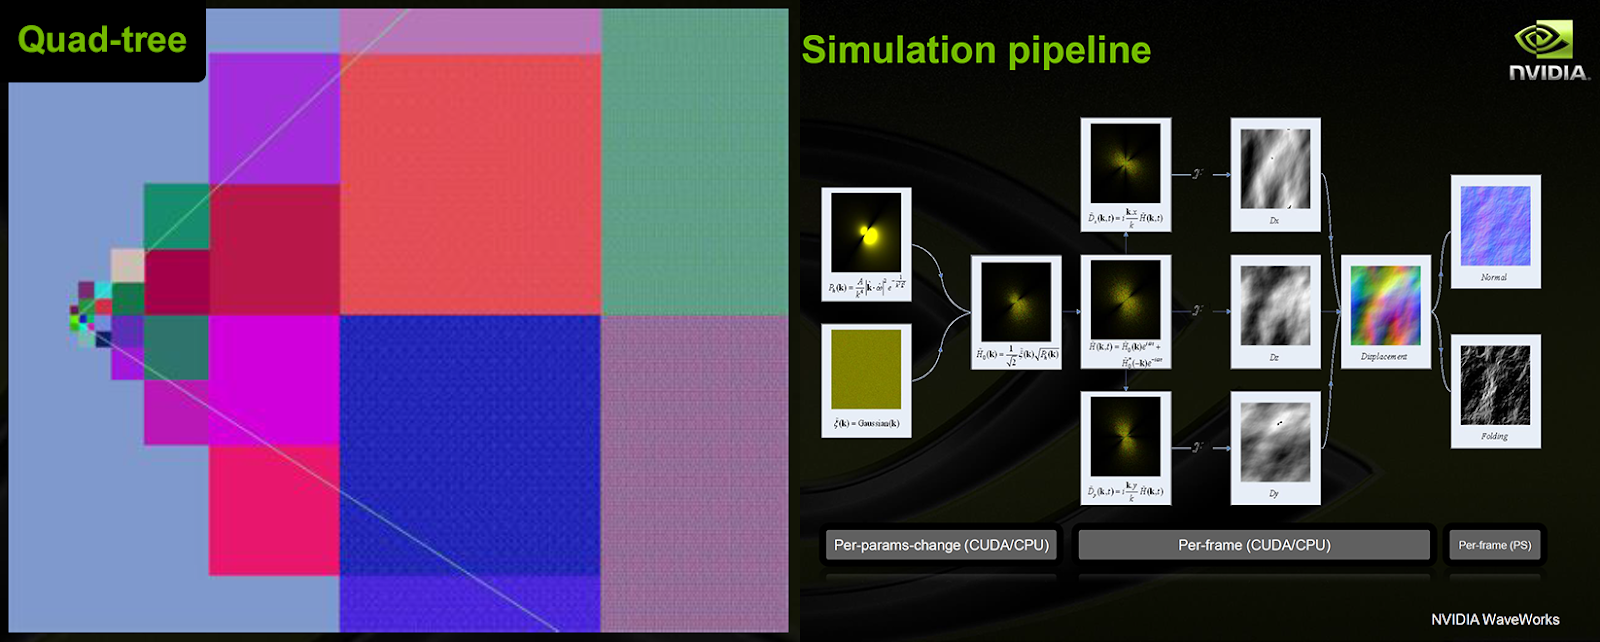 Quad Tree Used For Frustum Culling And Mesh LOD Overview Of A Simulation Pipeline